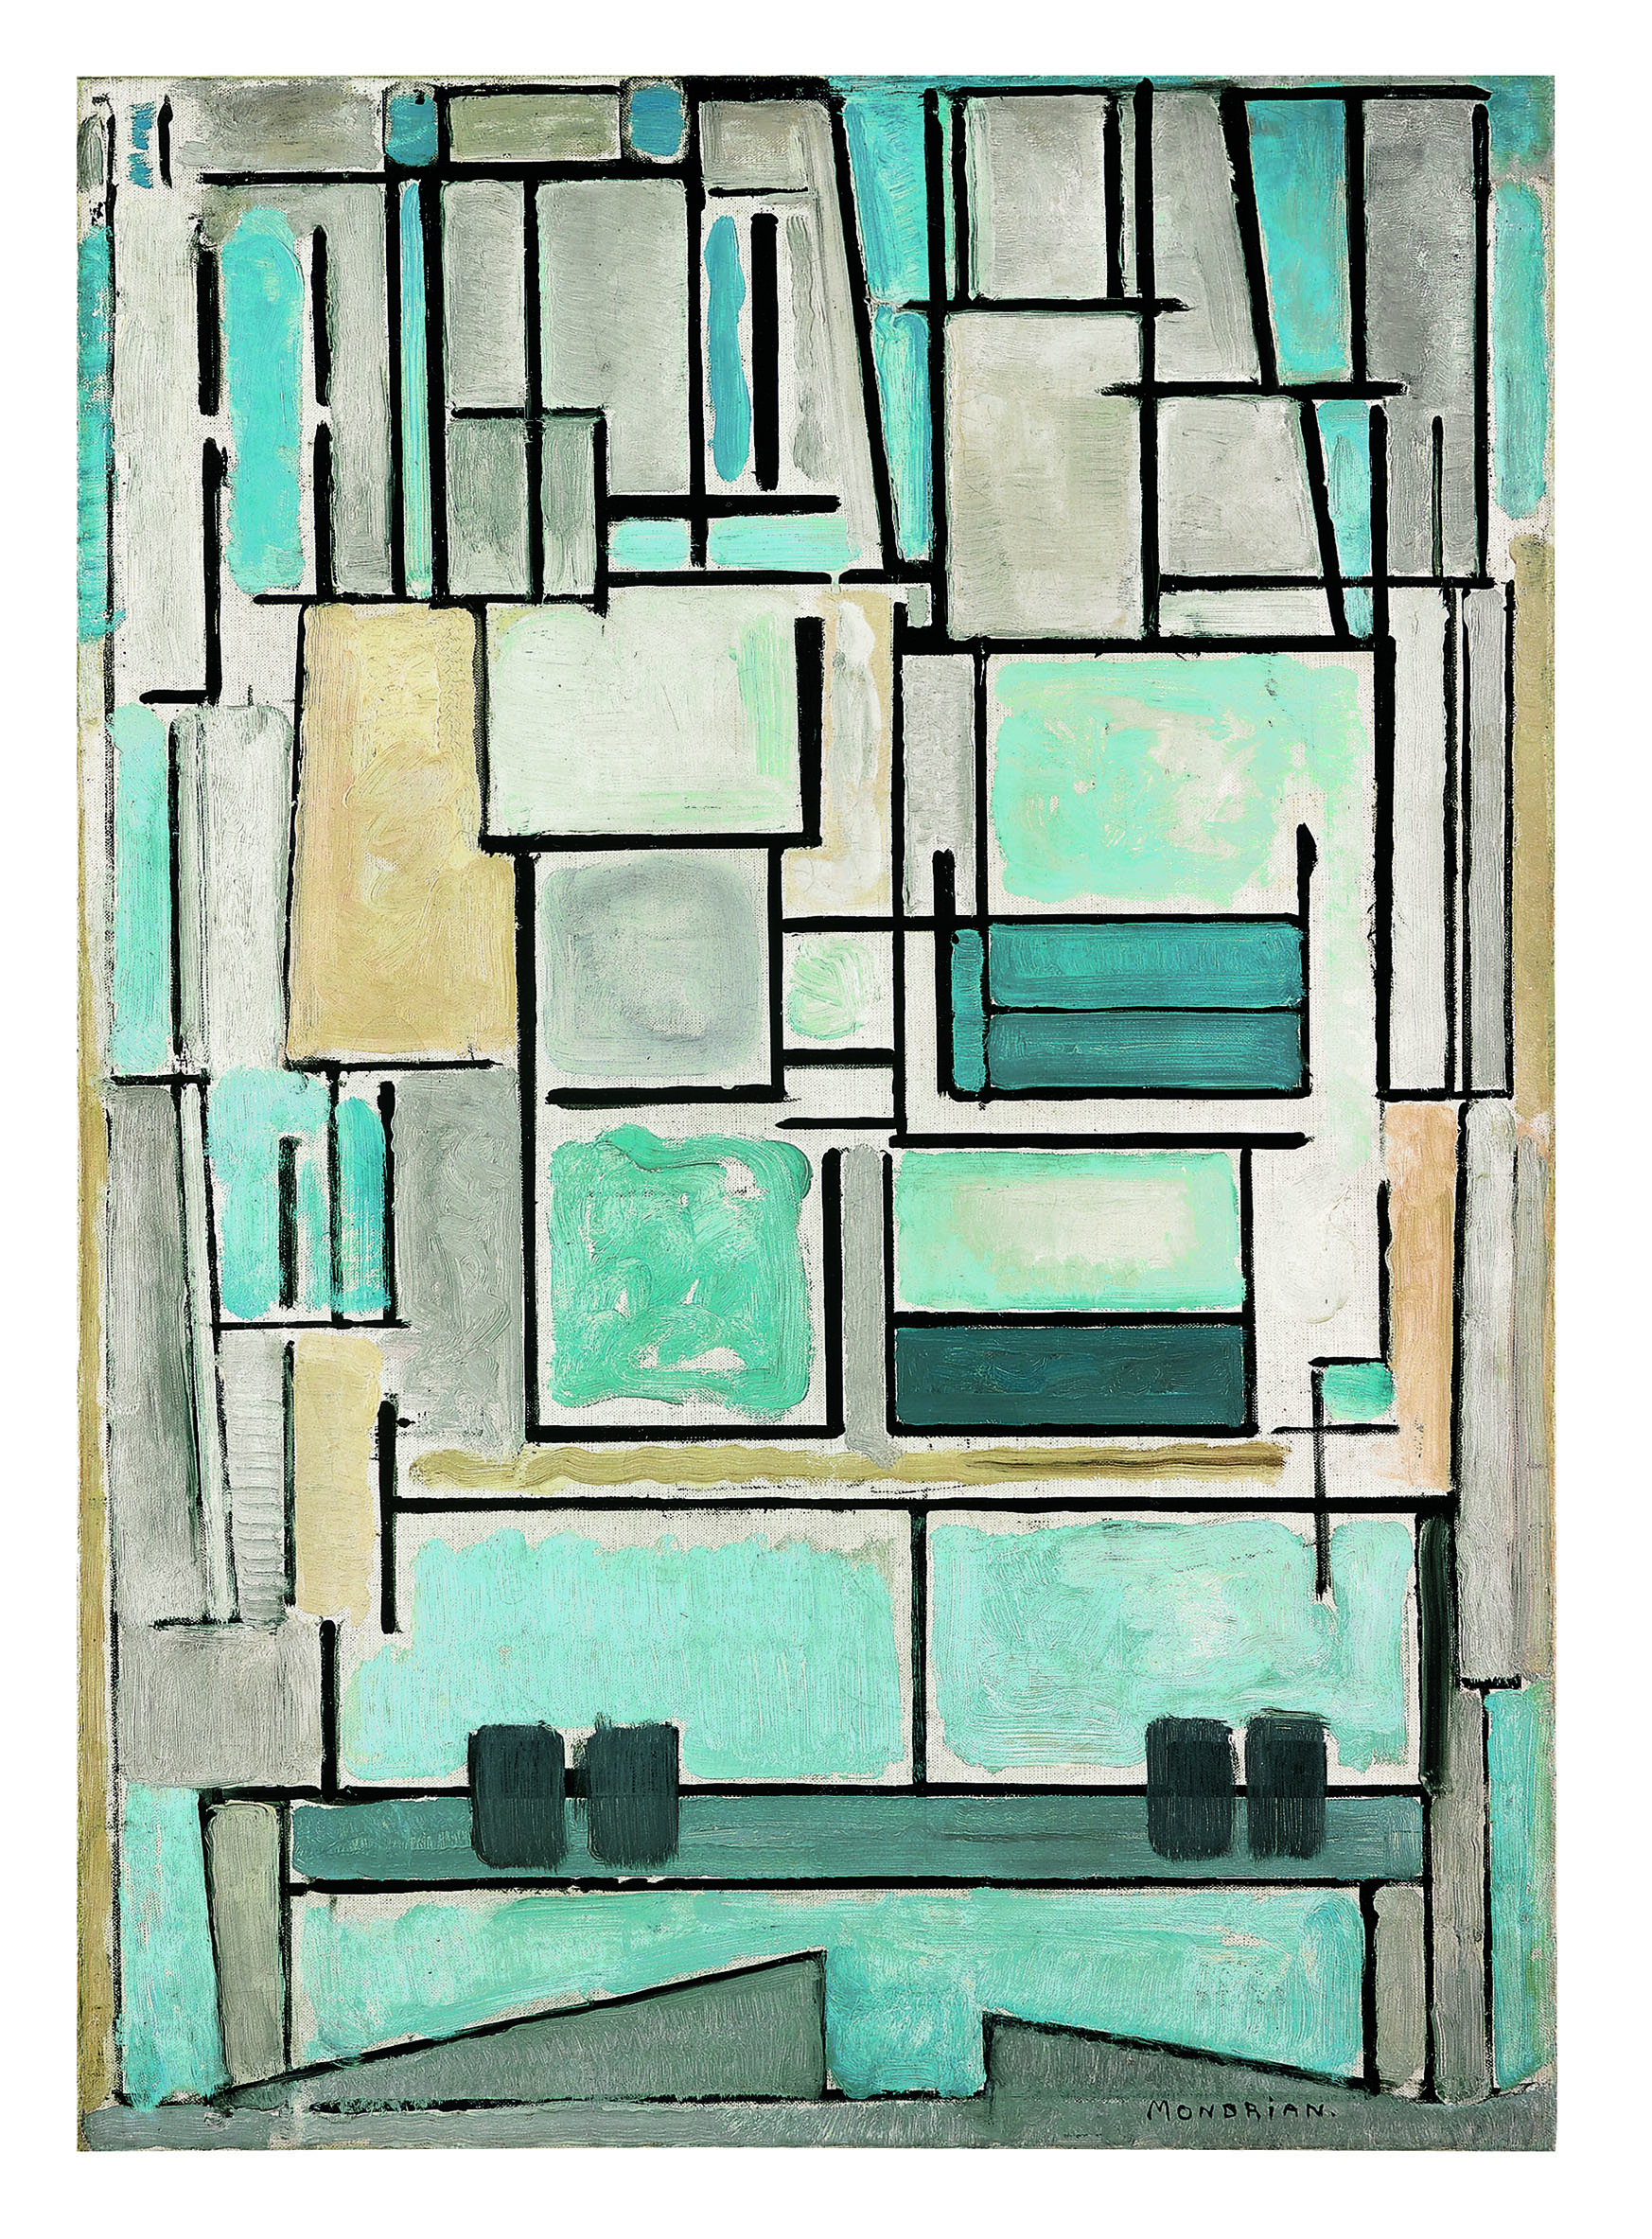 Piet Mondrian - Composition No. VI (Composition 9, Blue Façade) - 1914 - Fondation Beyeler, Riehen/Basilea - photo Peter Schibli, Basel © Mondrian/Holtzman